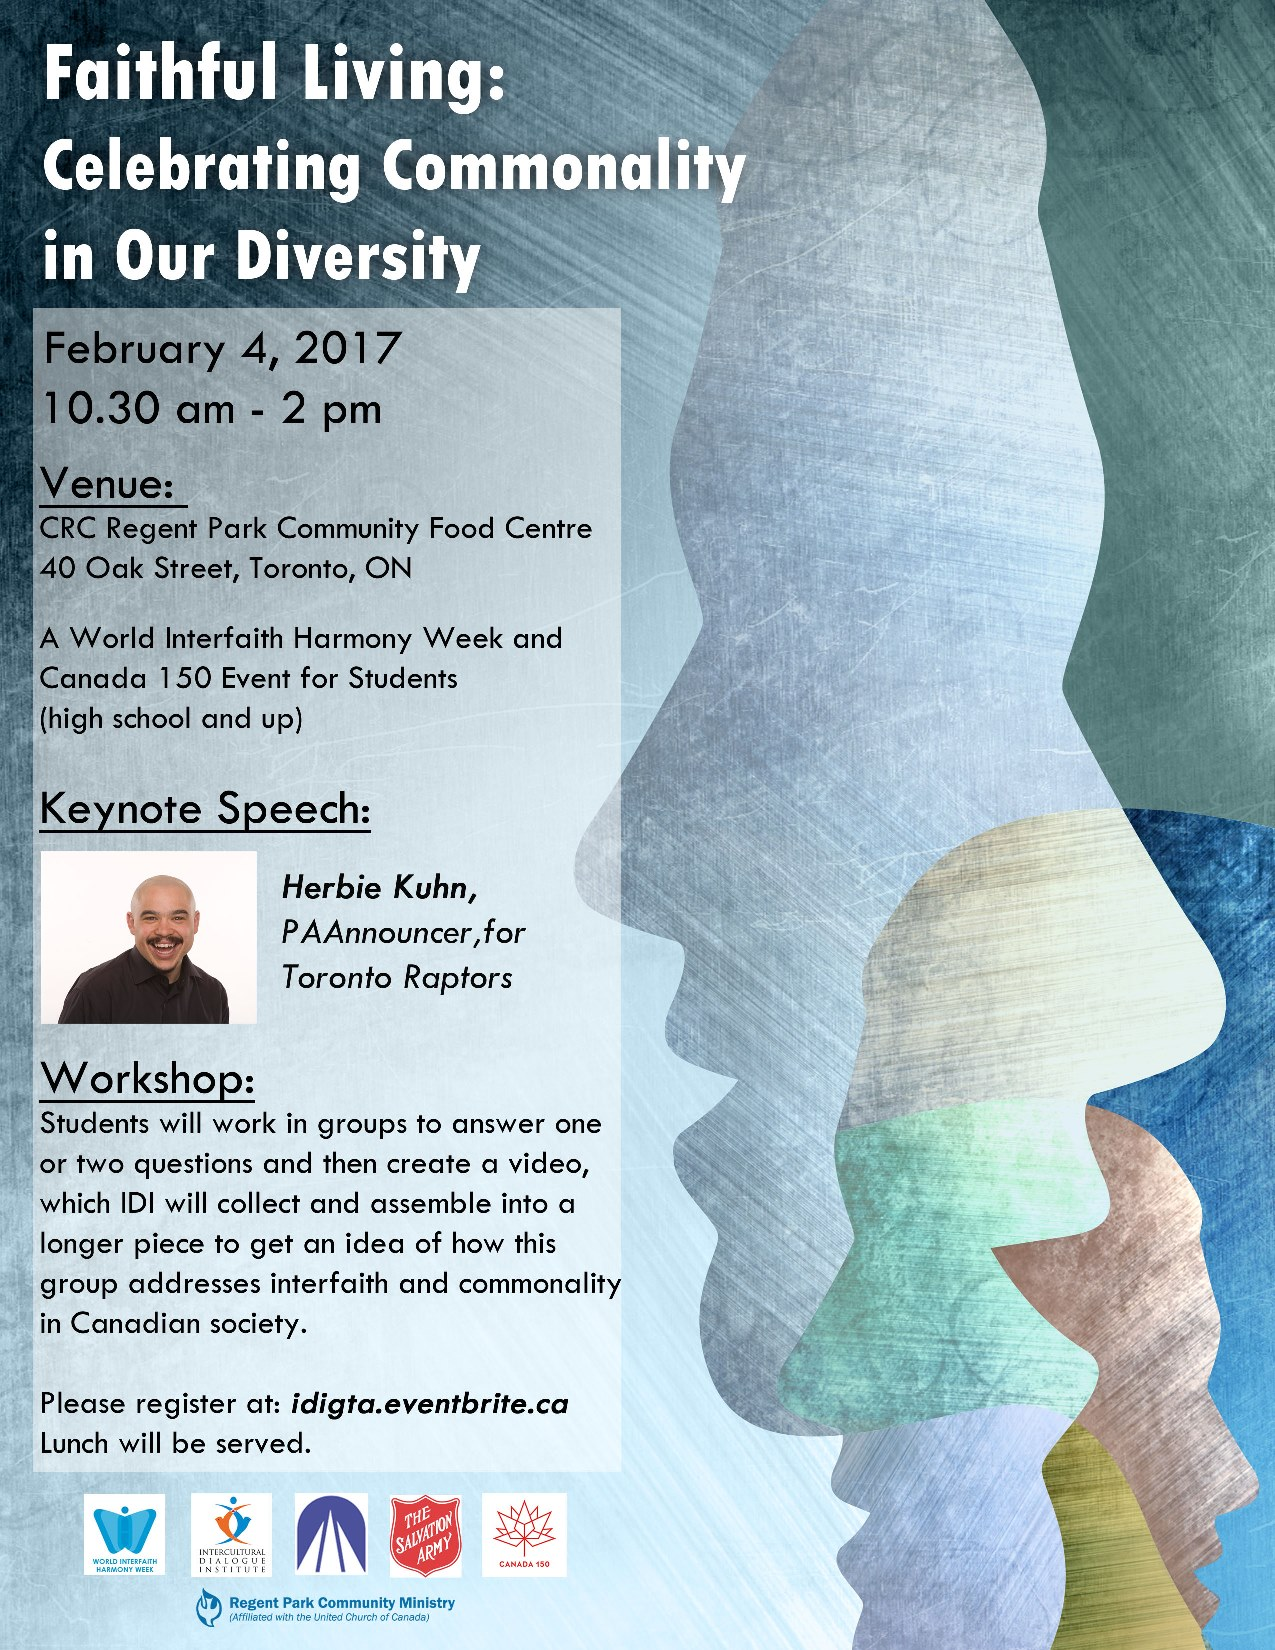 Herbie Kuhn, Celebrating Diversity in Our Commonality, Intercultural Dialogue Institute, Canada 150, World Interfaith Harmony Week